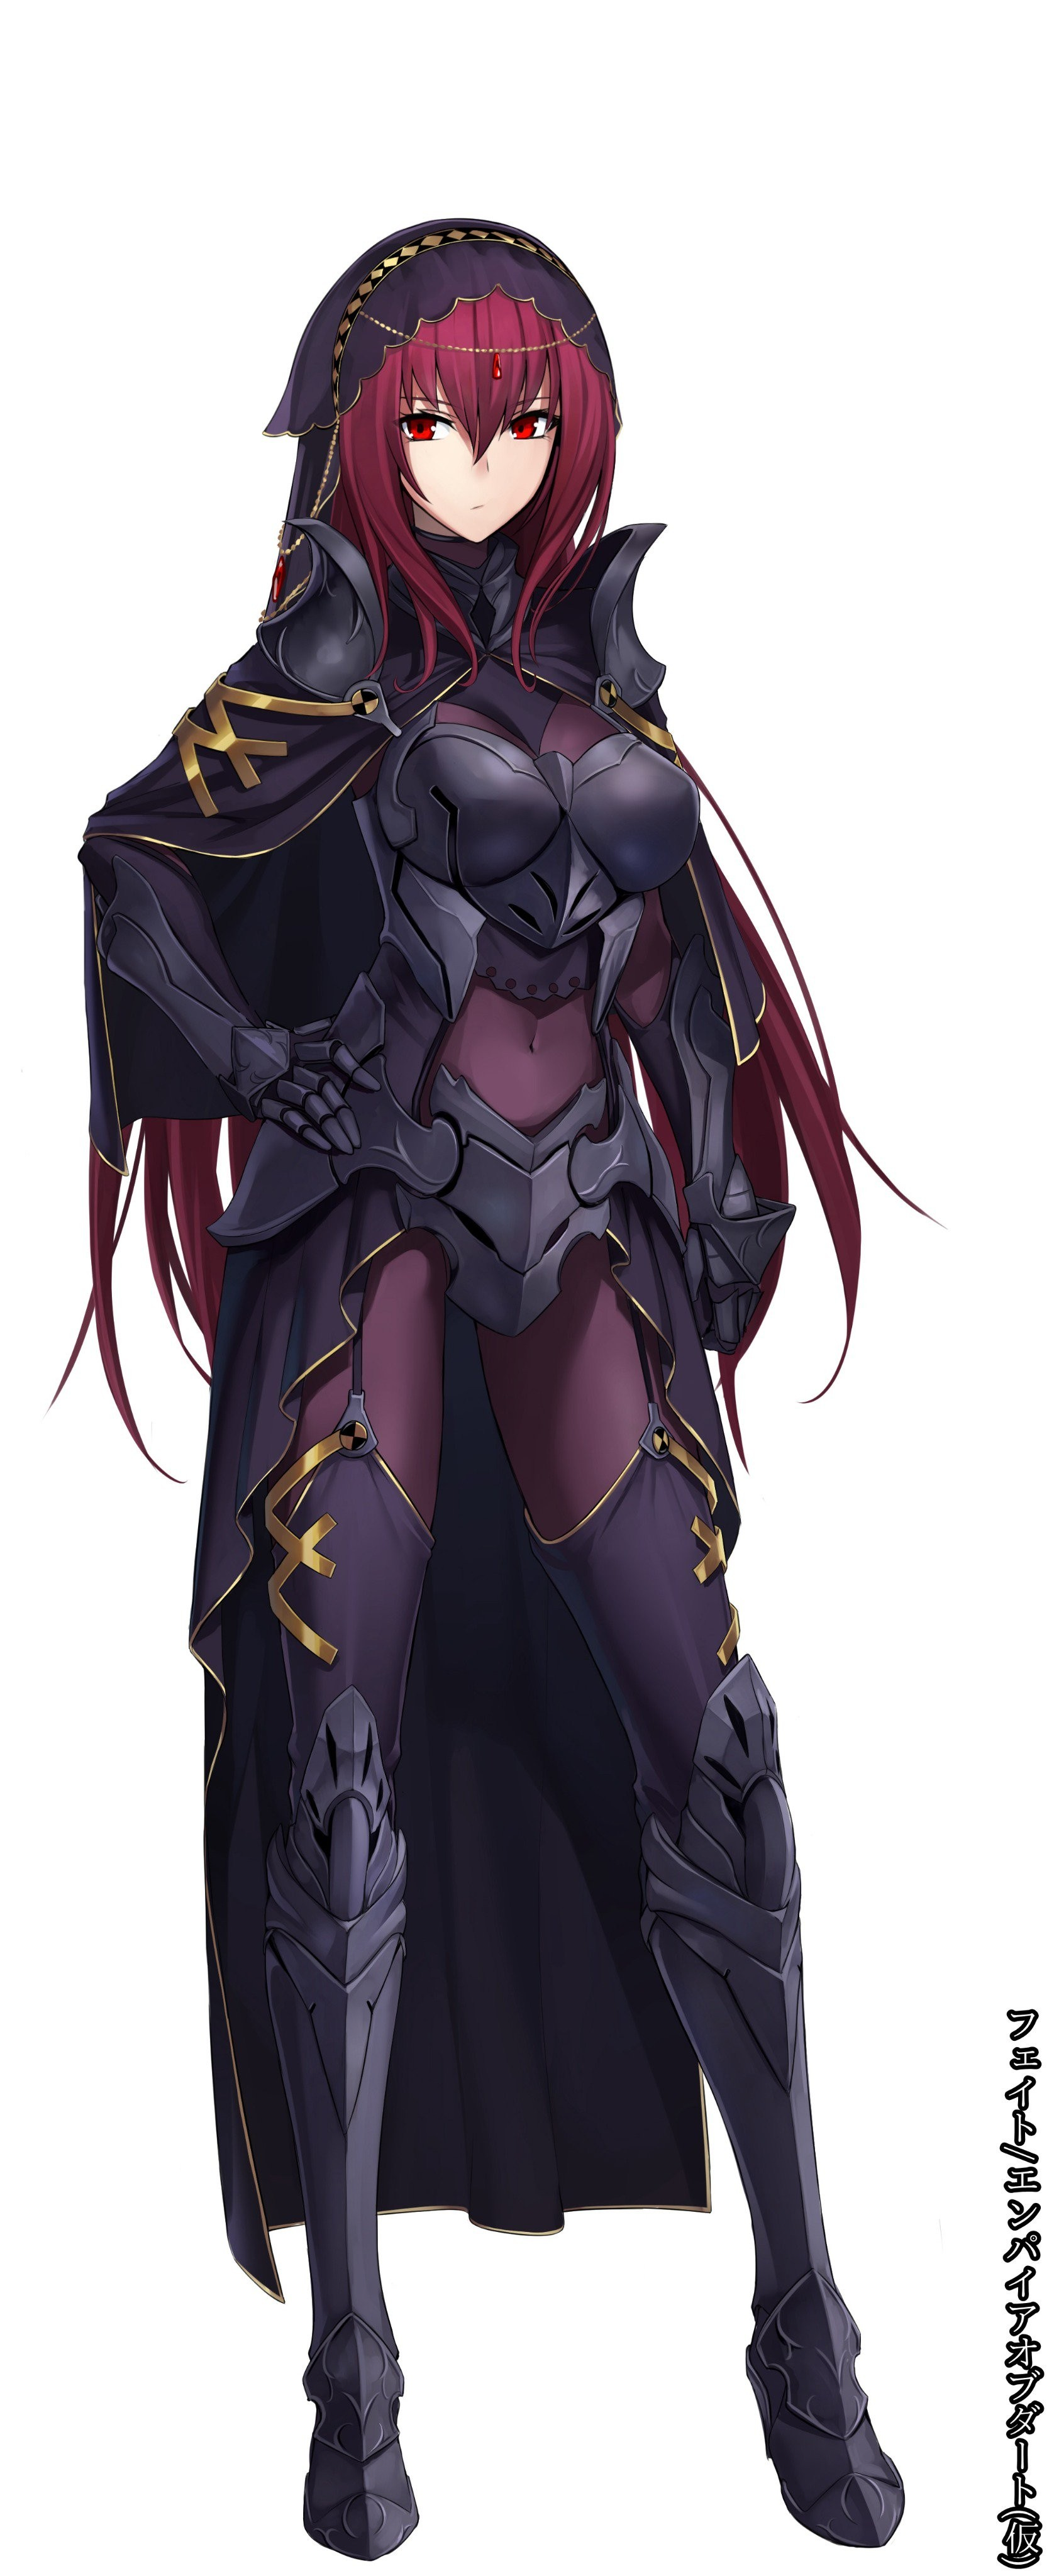 Anime 1684x4096 anime anime girls Fate/Grand Order Lancer (Fate/Grand Order) armor bodysuit heels stockings long hair redhead red eyes Scathach (Fate/Grand Order)